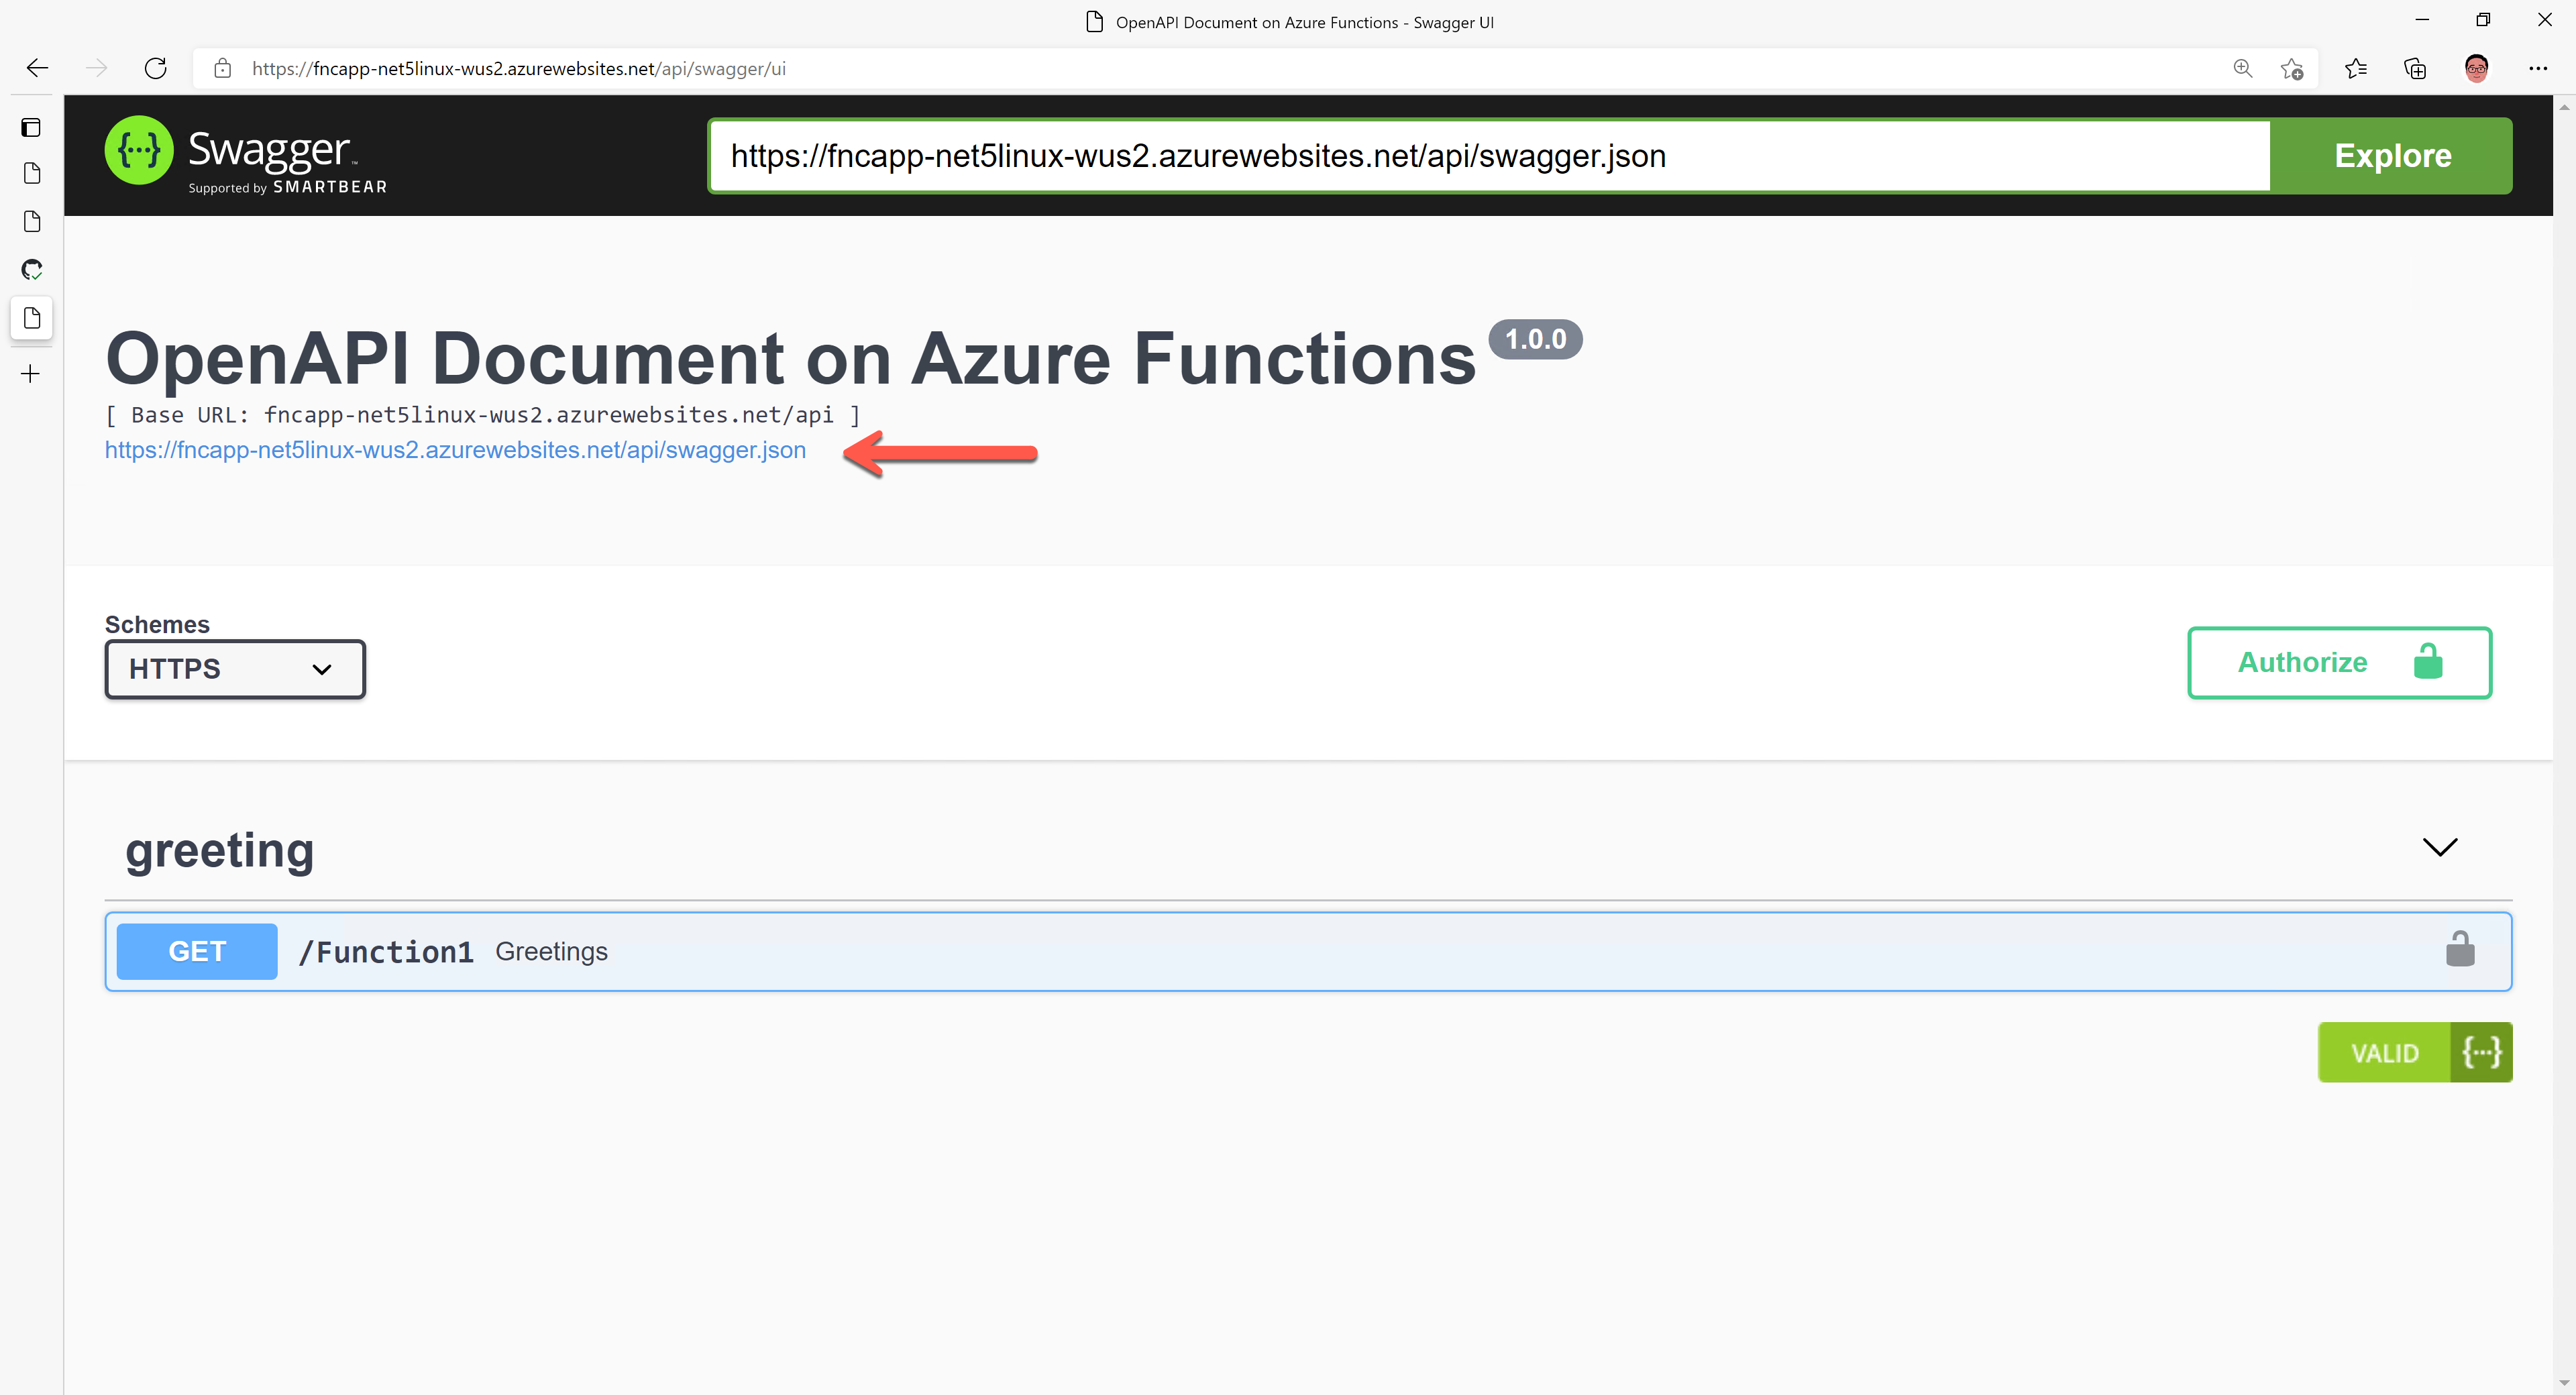 Swagger UI on Azure